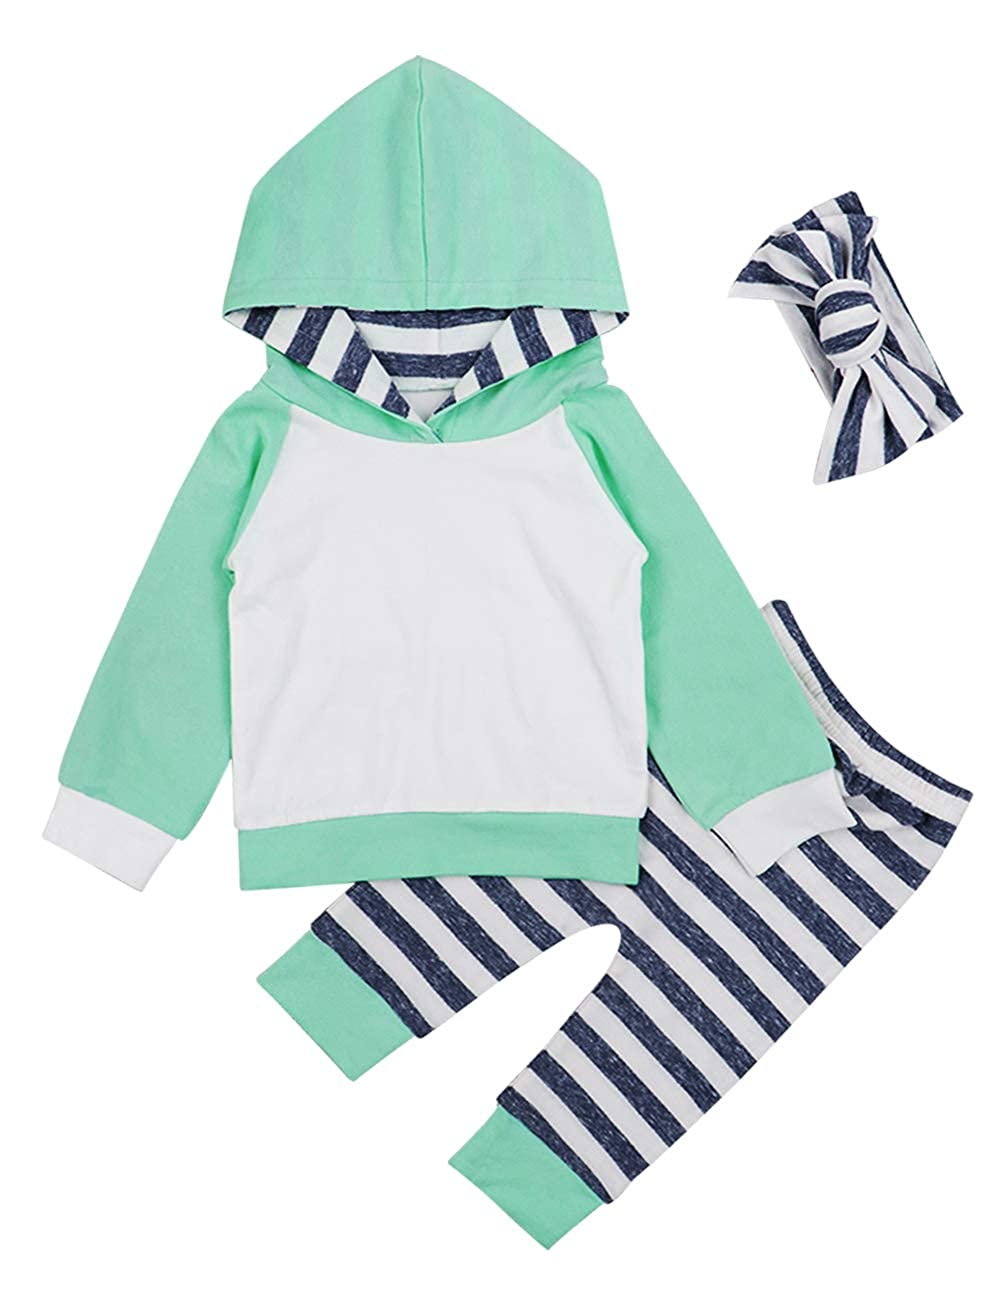 Baby Boys Girls Clothes Long Sleeve Hoodie Tops Sweatsuit Pants Headband Outfits Set